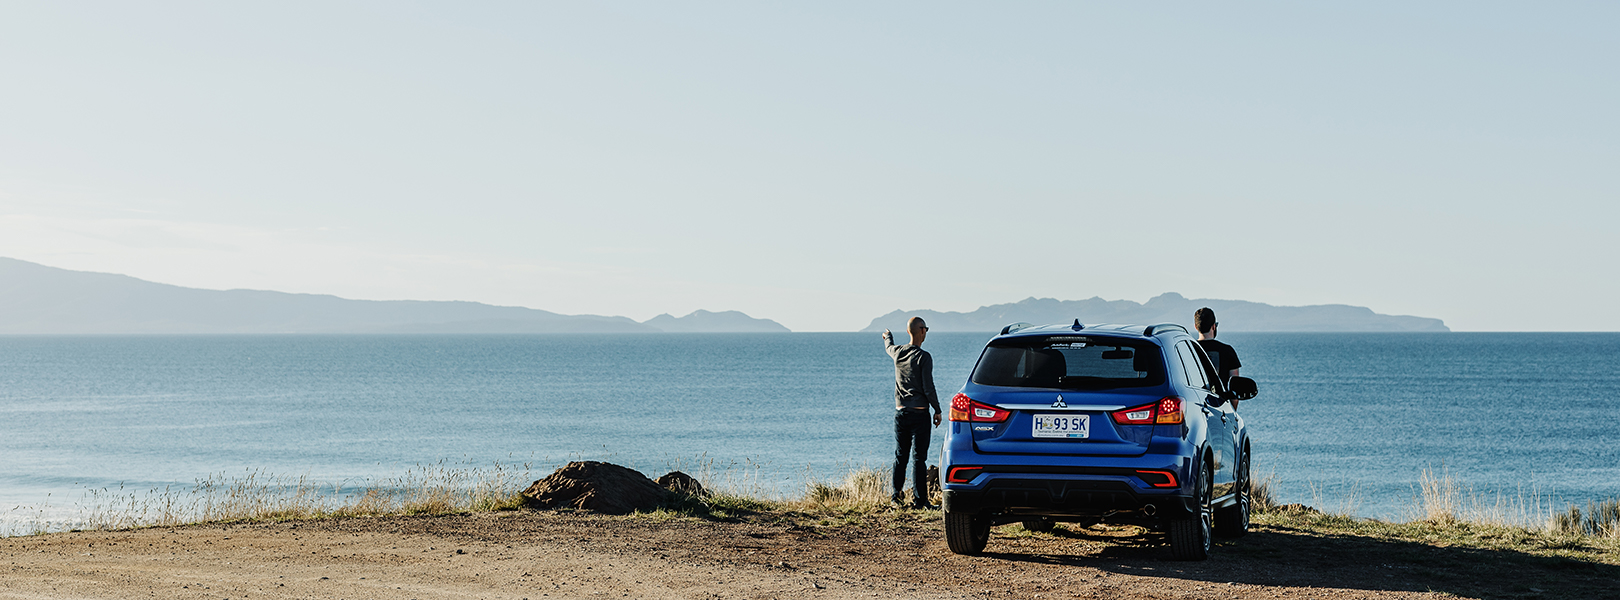 Couple standing next to an SUV looking out towards the ocean